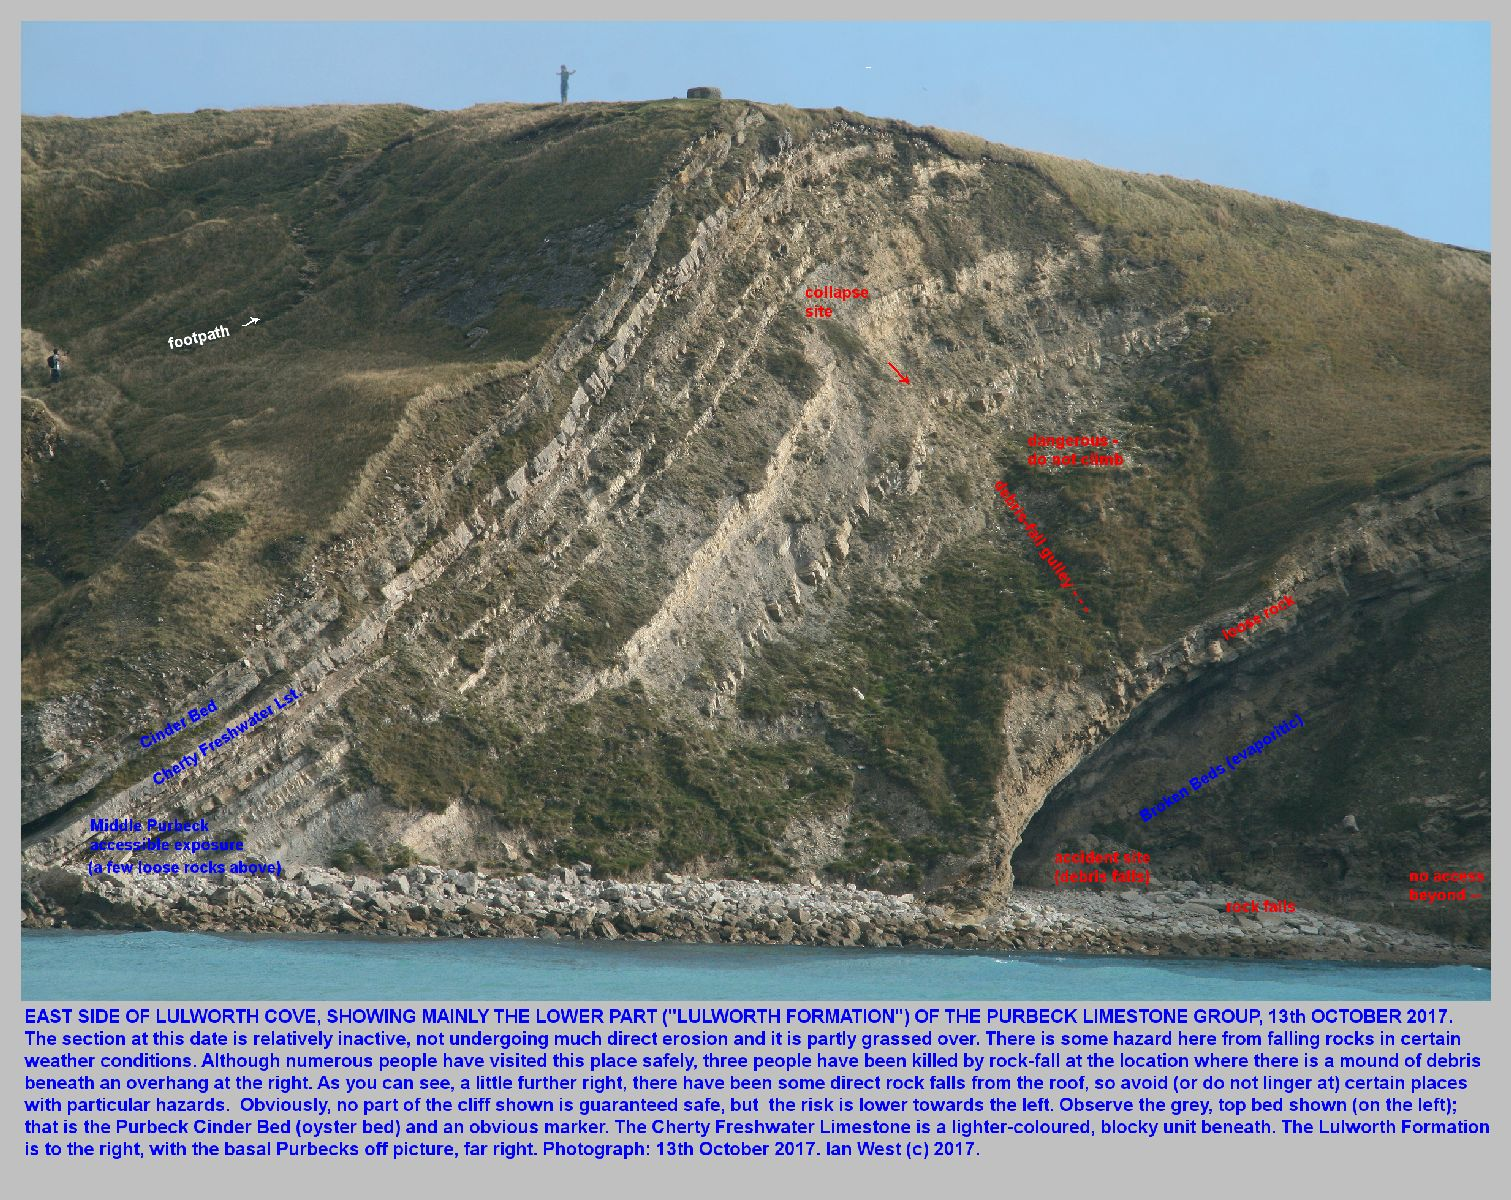 The Purbeck Group, cliff section on the east side of Lulworth Cove, Dorset, with rockfall areas indicated, 13th October, 2017